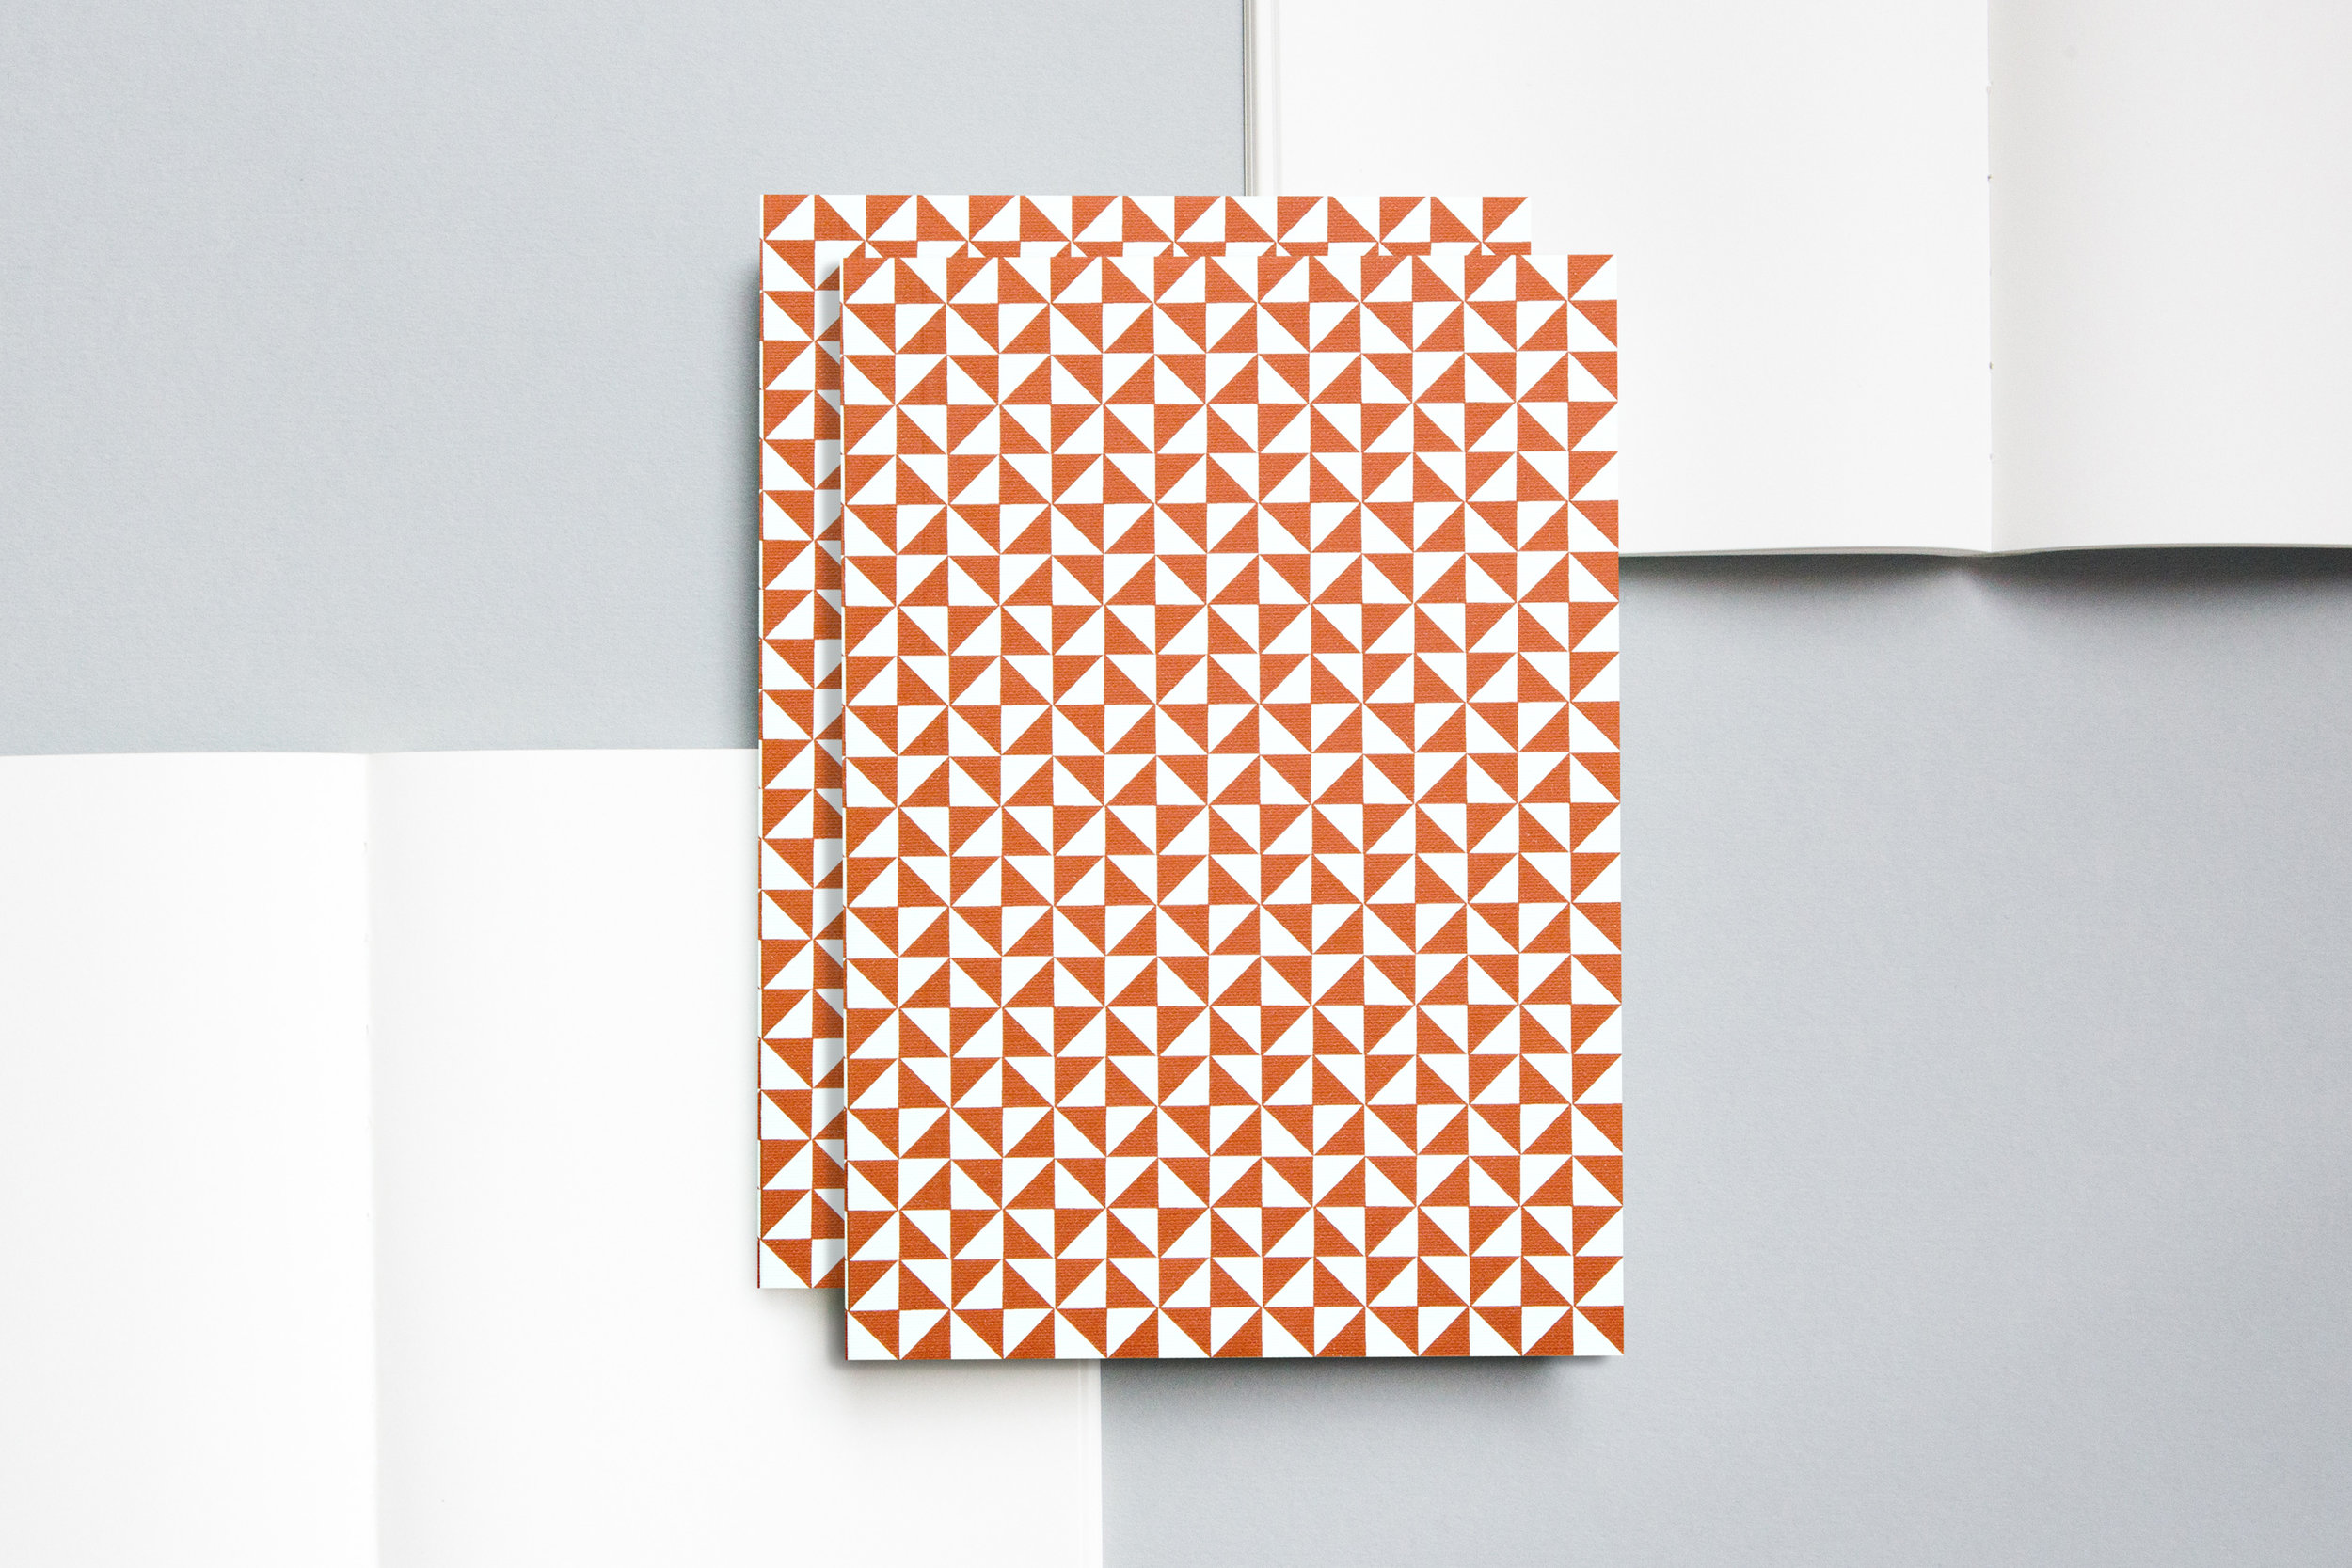 A5021ML - Layflat Notebook, Kaffe Print in Brick Red and Ruled, ola.jpg